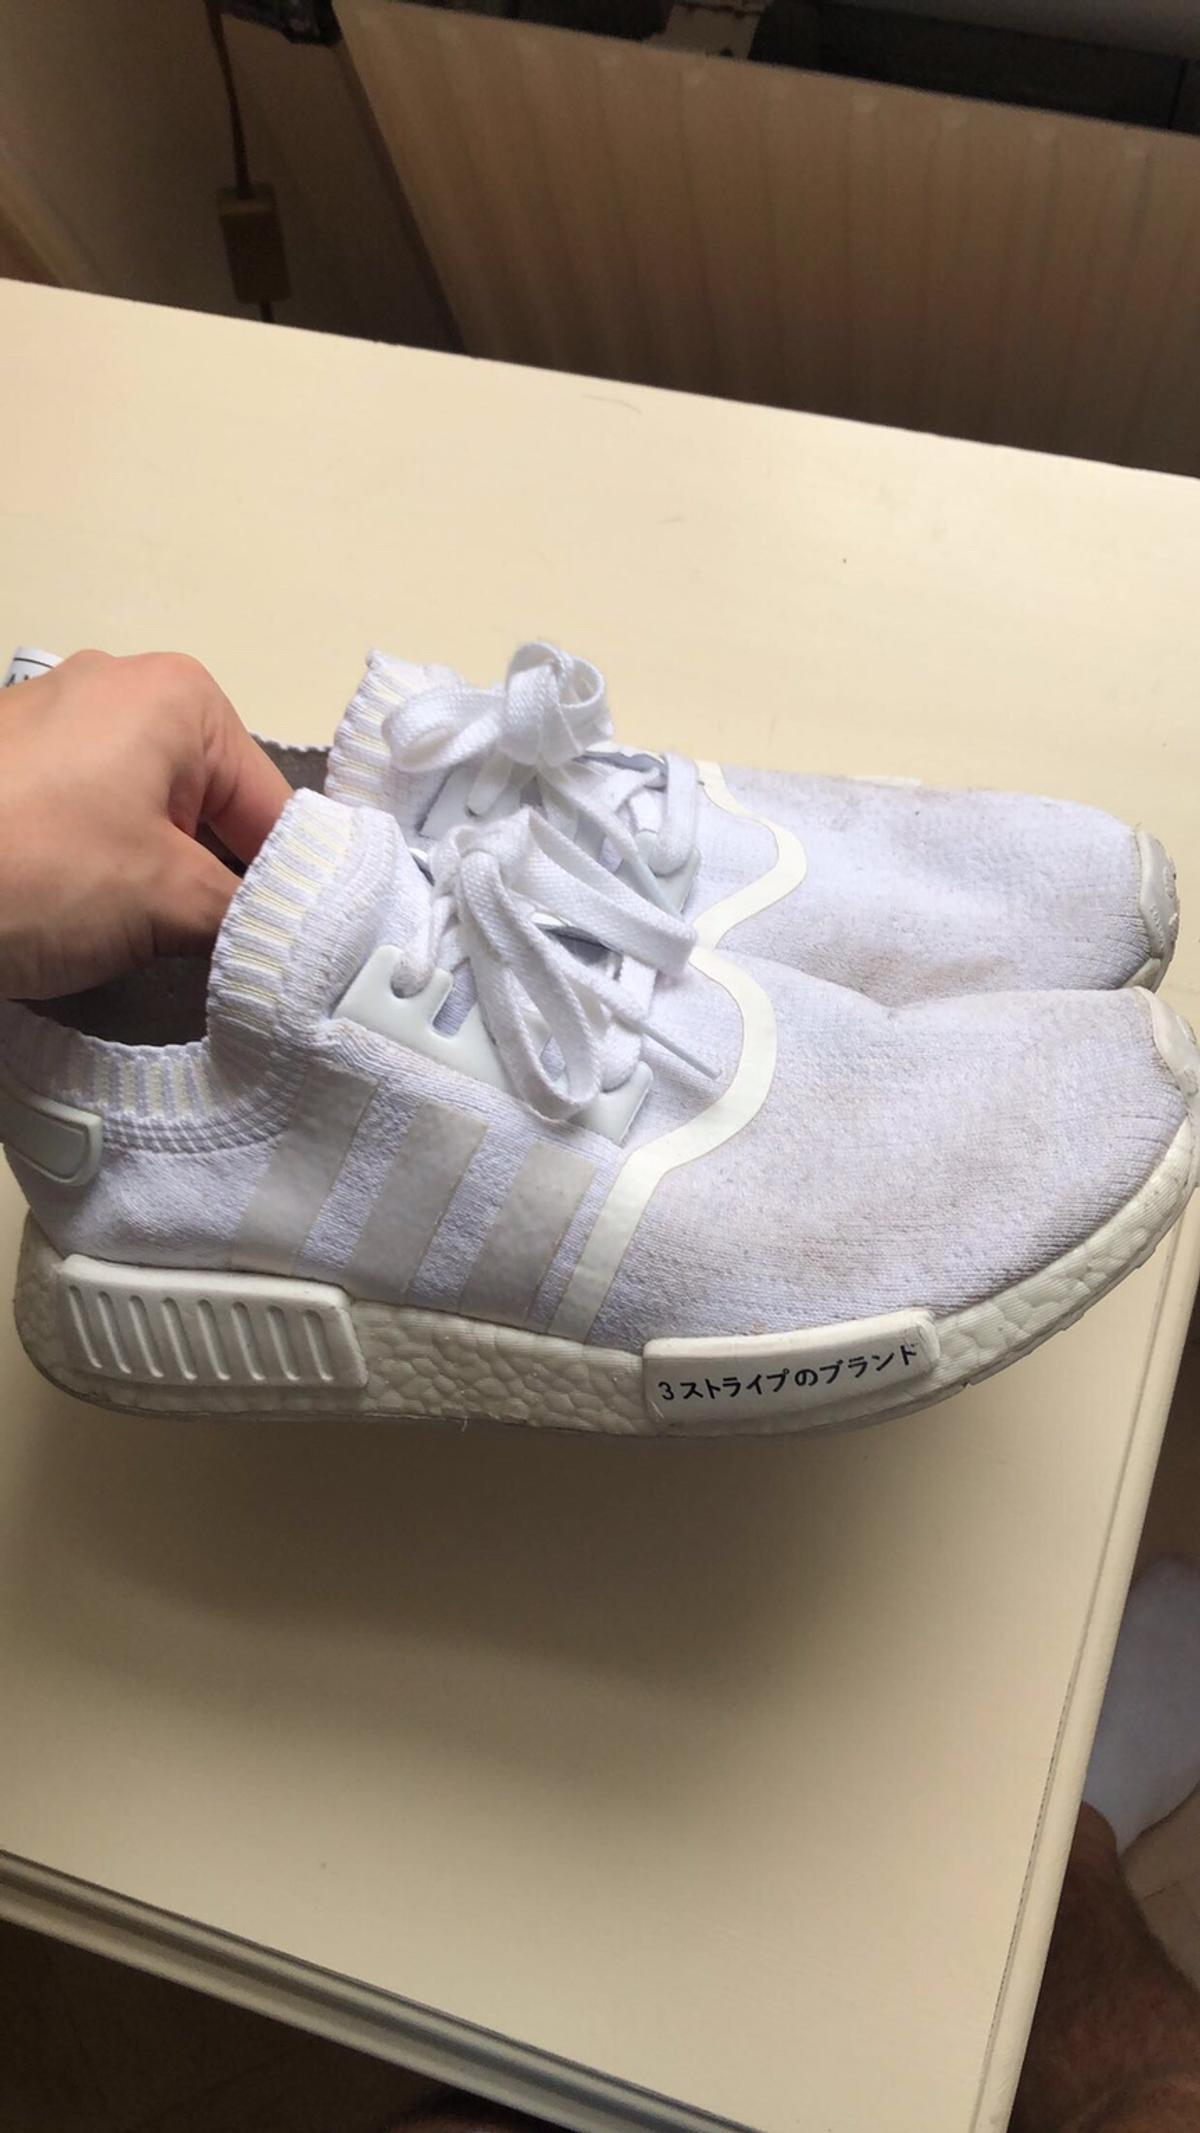 """Adidas NMD """"Japan boost"""" US 9, EU 42.5 in 11330 Stockholm"""